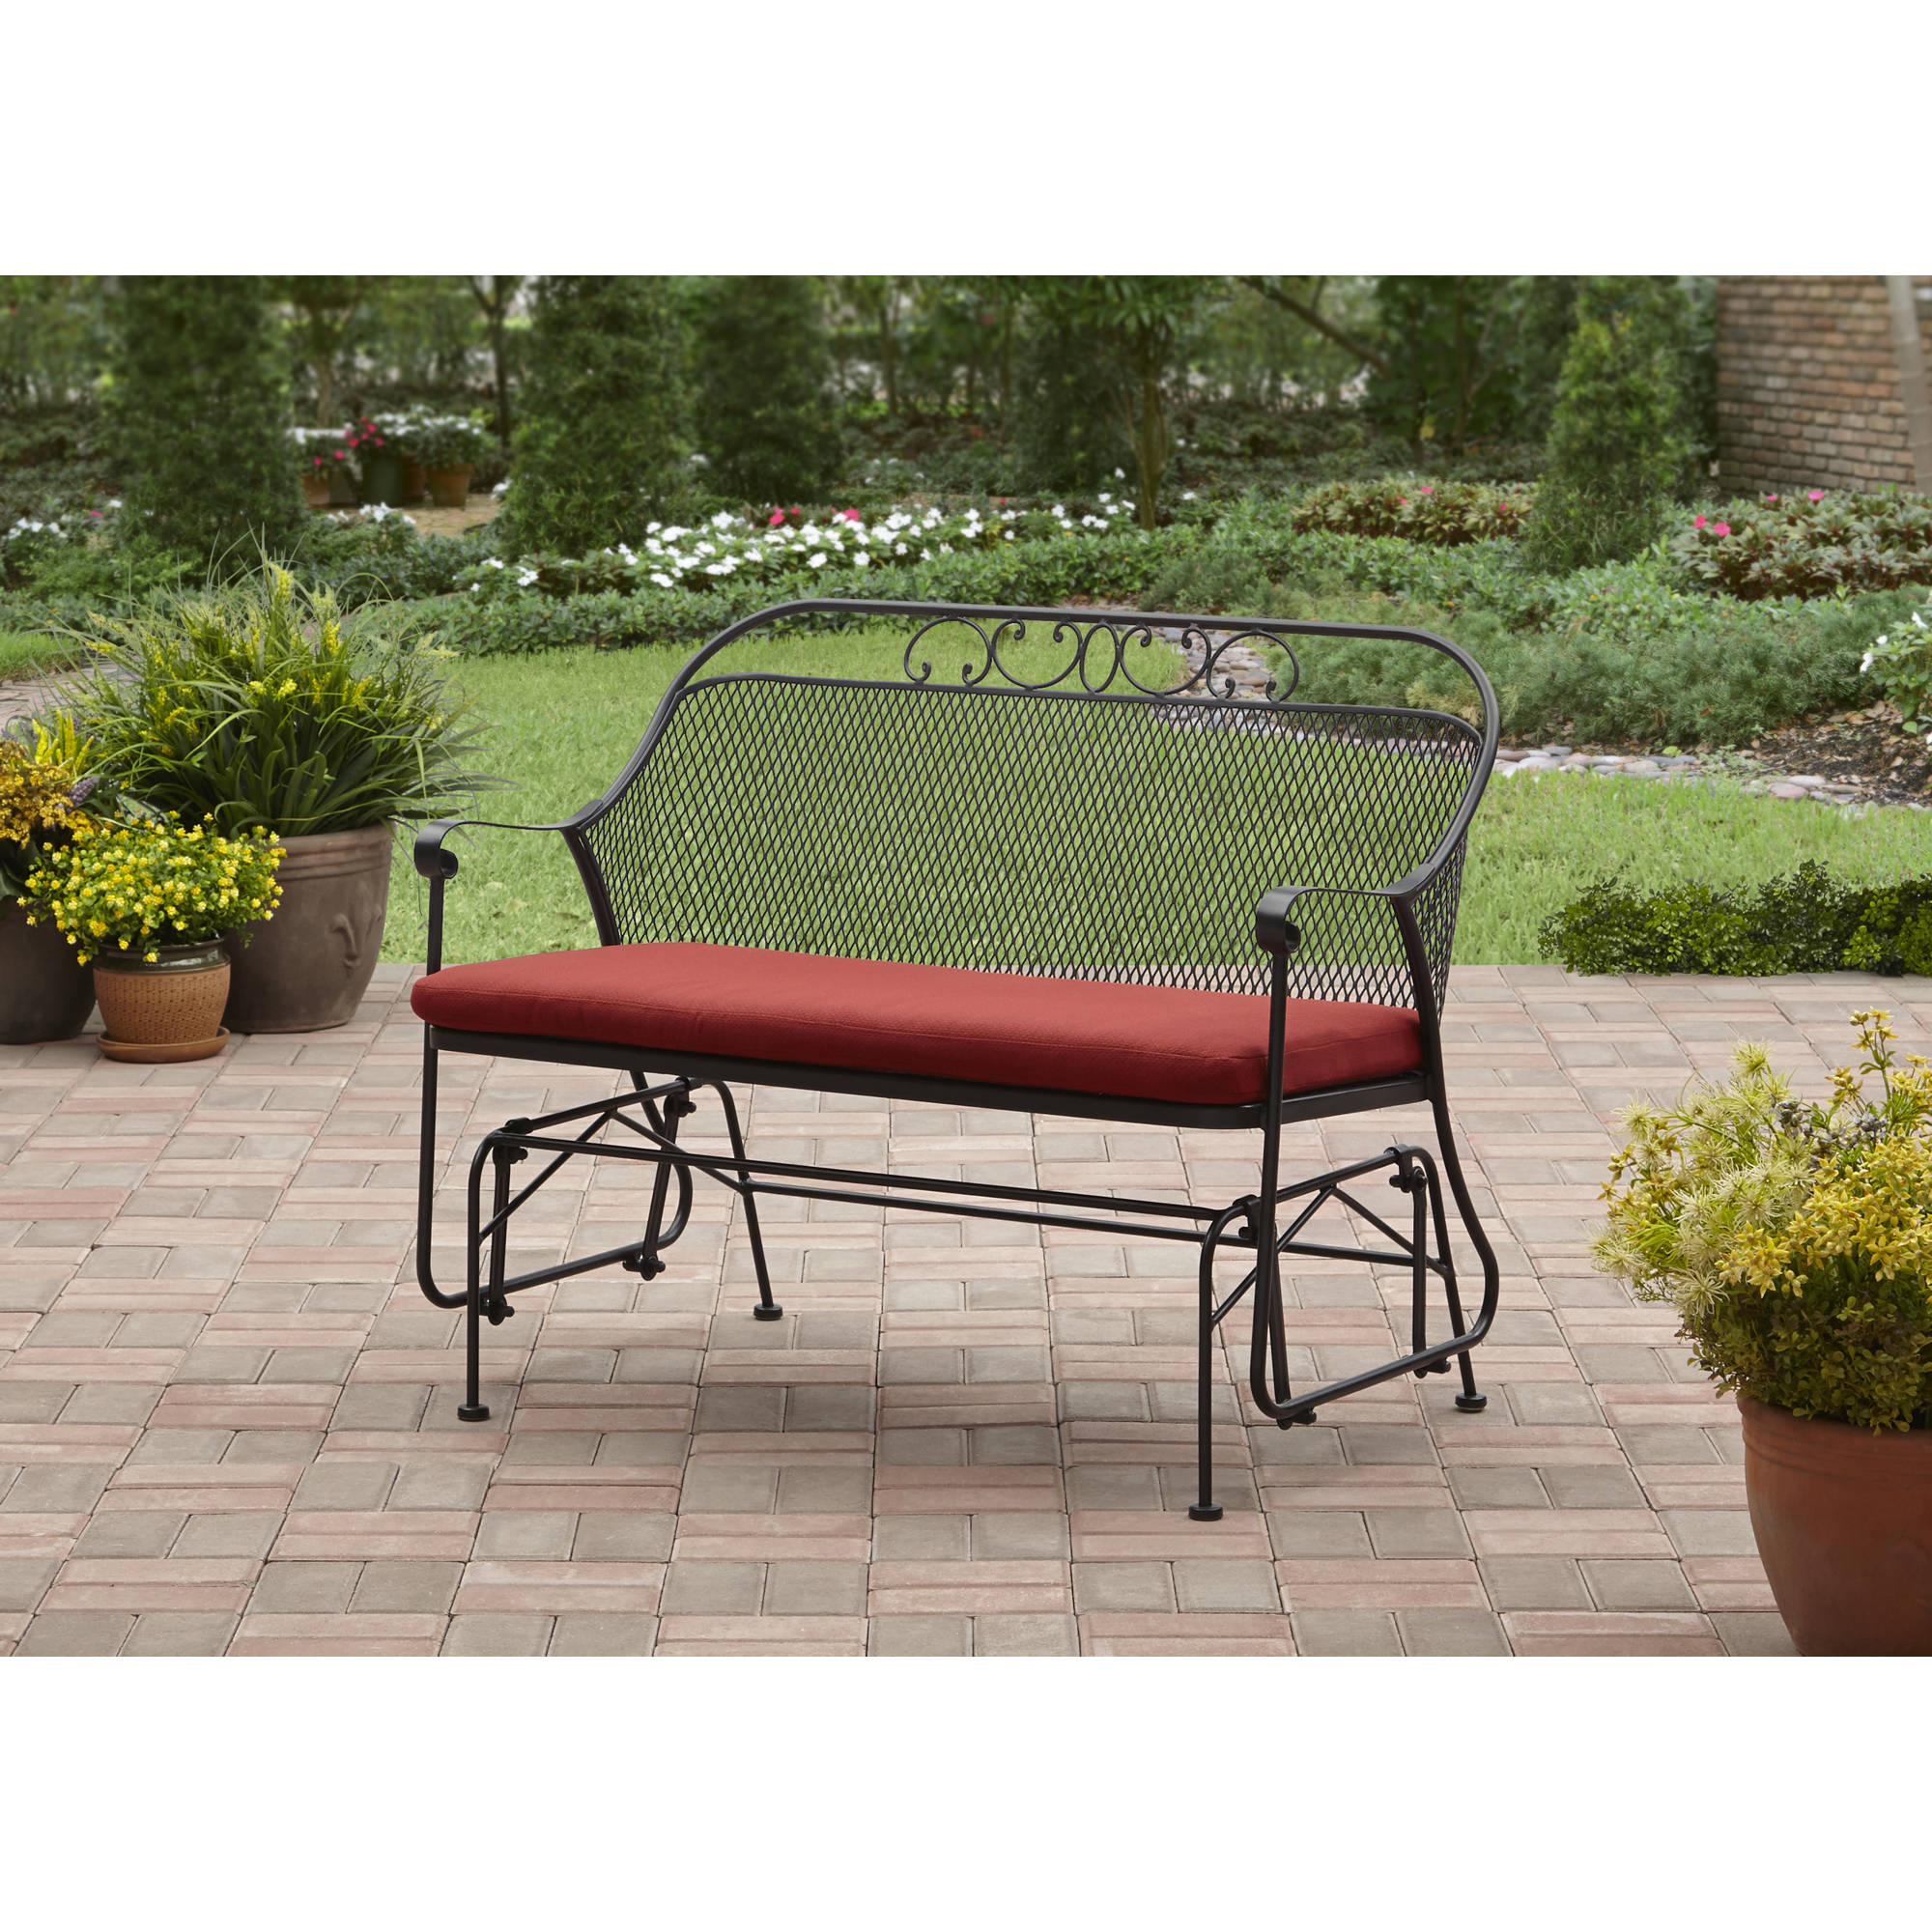 Loveseat Glider Benches With Cushions With Regard To Trendy Better Homes & Gardens Clayton Court Outdoor Glider, Red – Walmart (View 7 of 30)